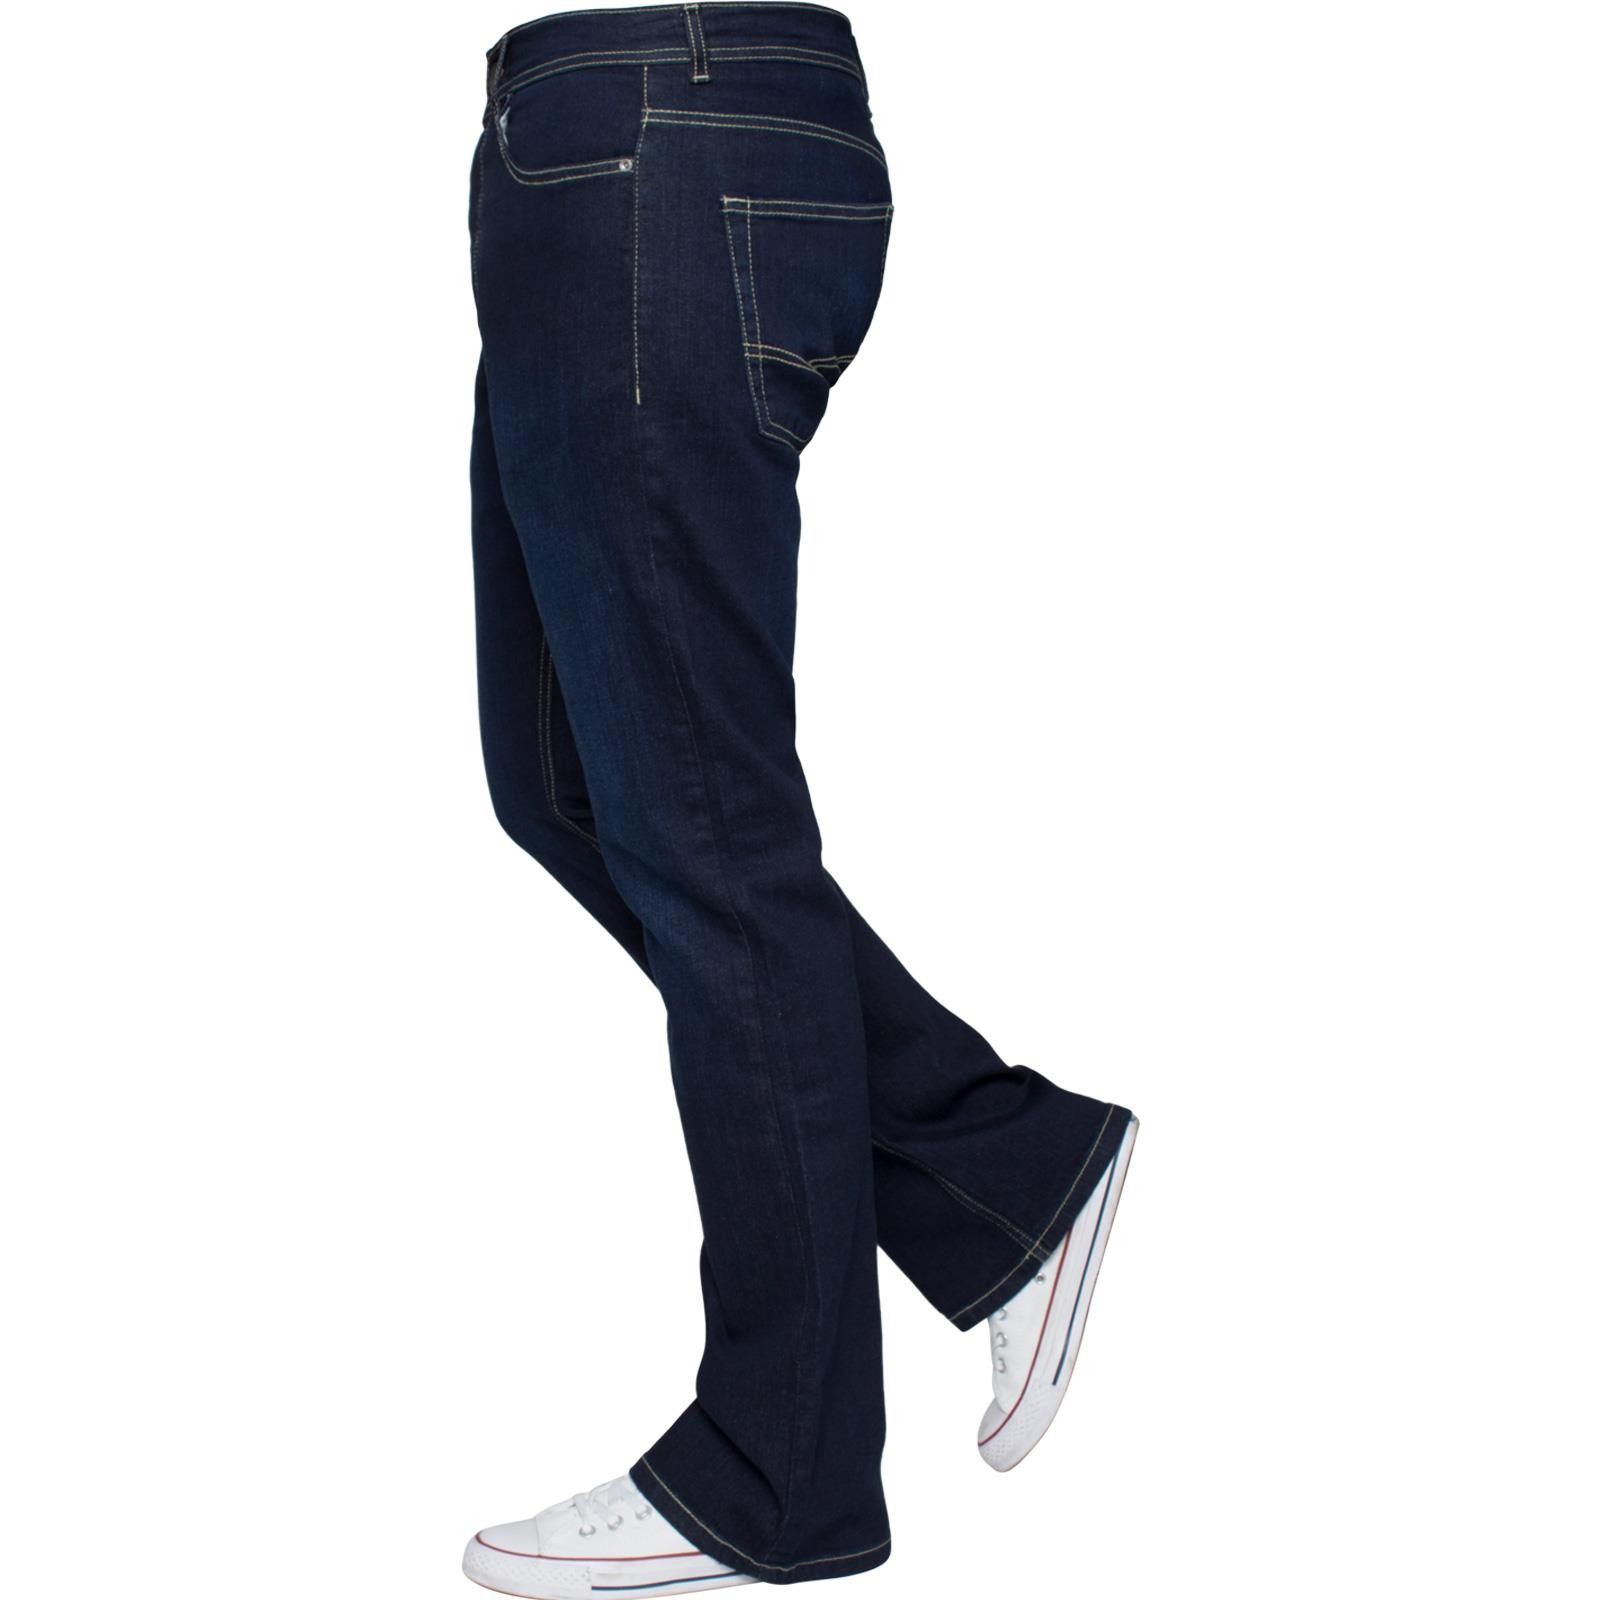 Mens-Straight-Bootcut-Jeans-Stretch-Denim-Pants-Regular-Fit-Big-Tall-All-Waists thumbnail 49